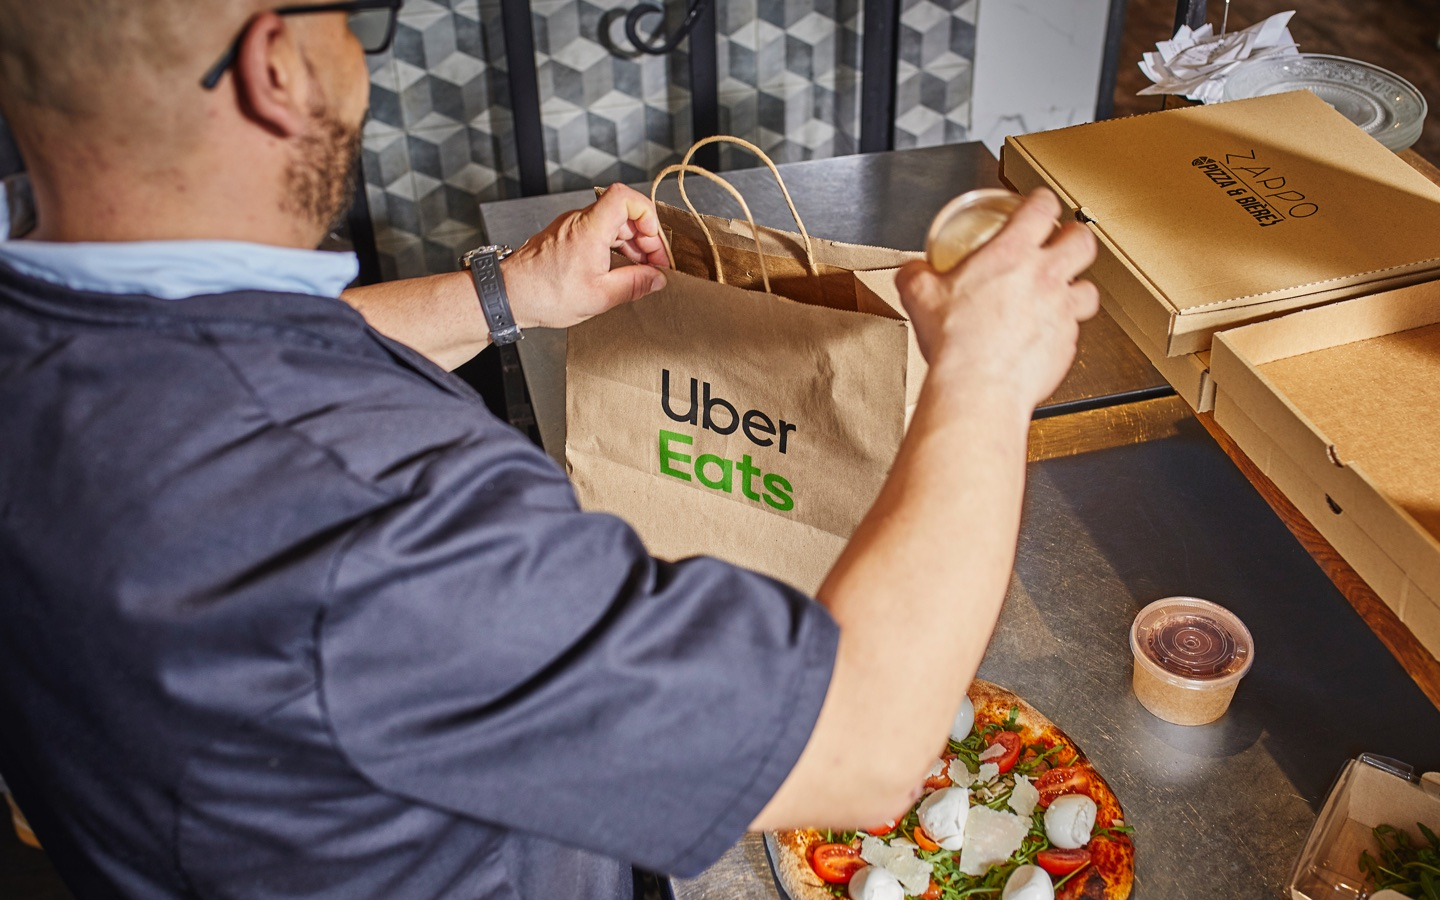 London | Uber Eats | Blog